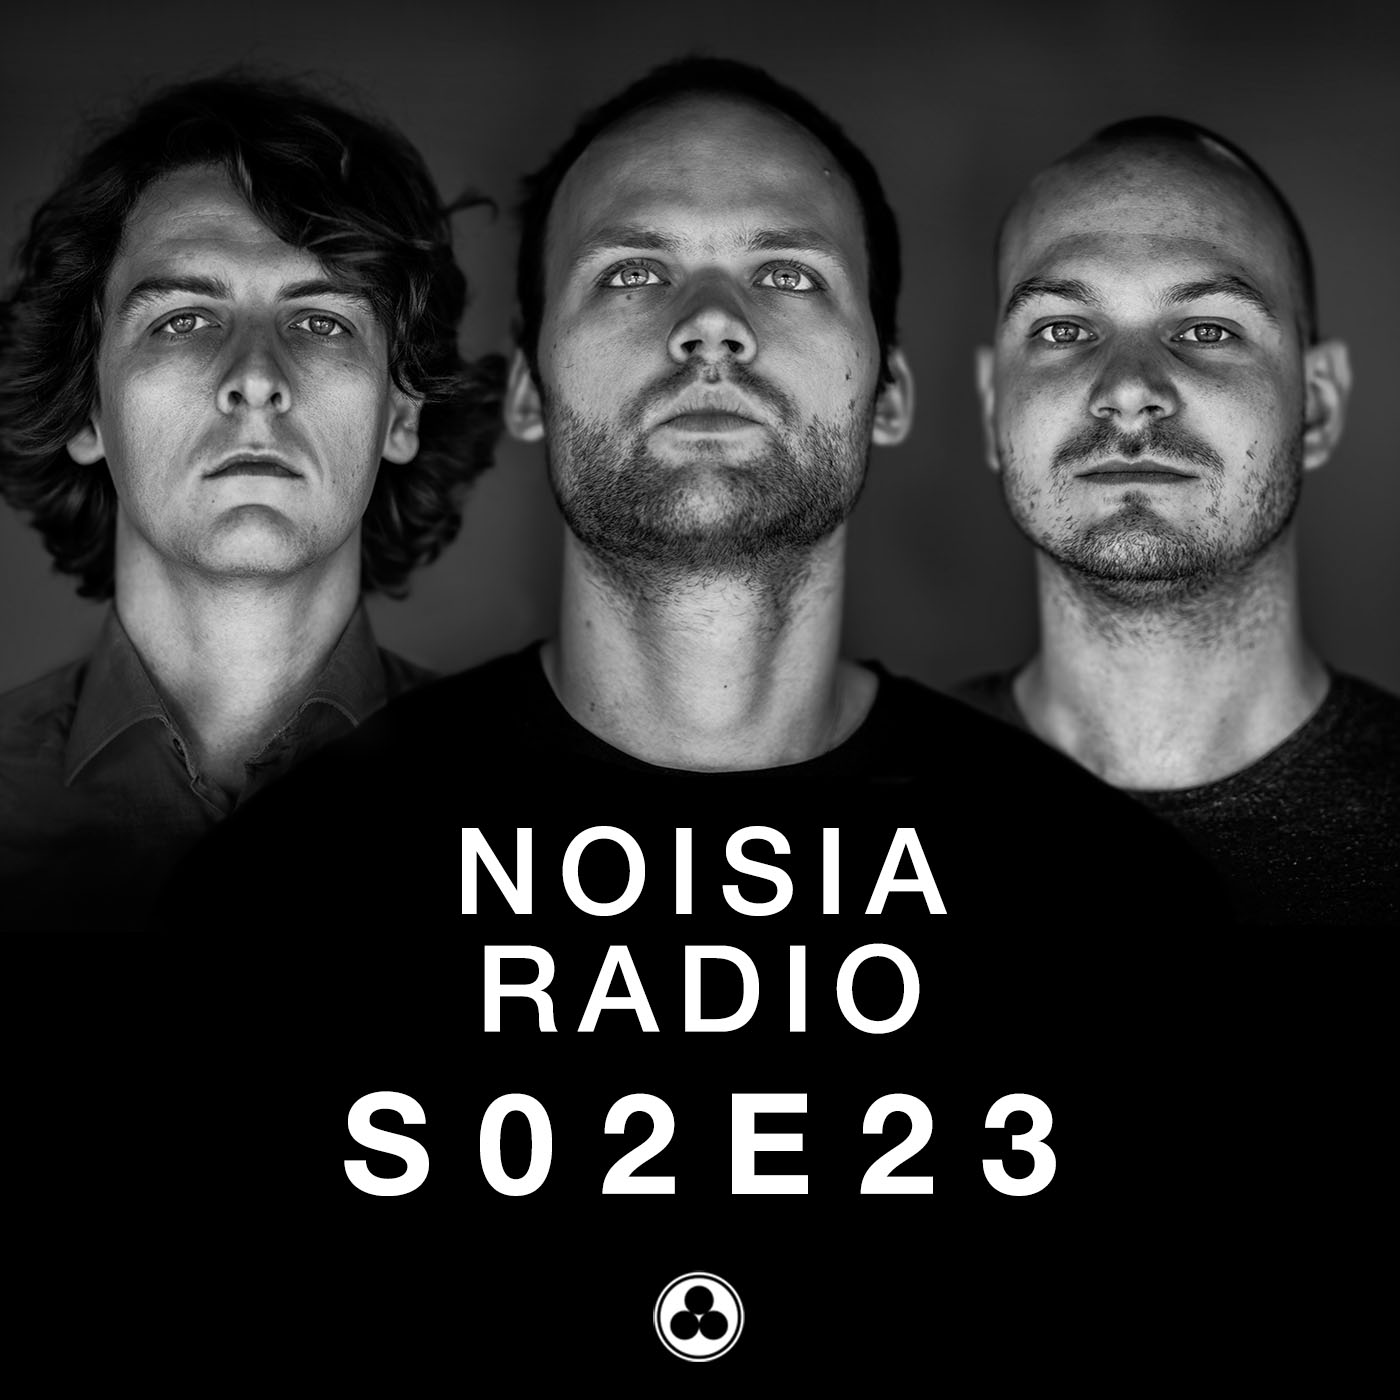 Noisia Radio S02E23